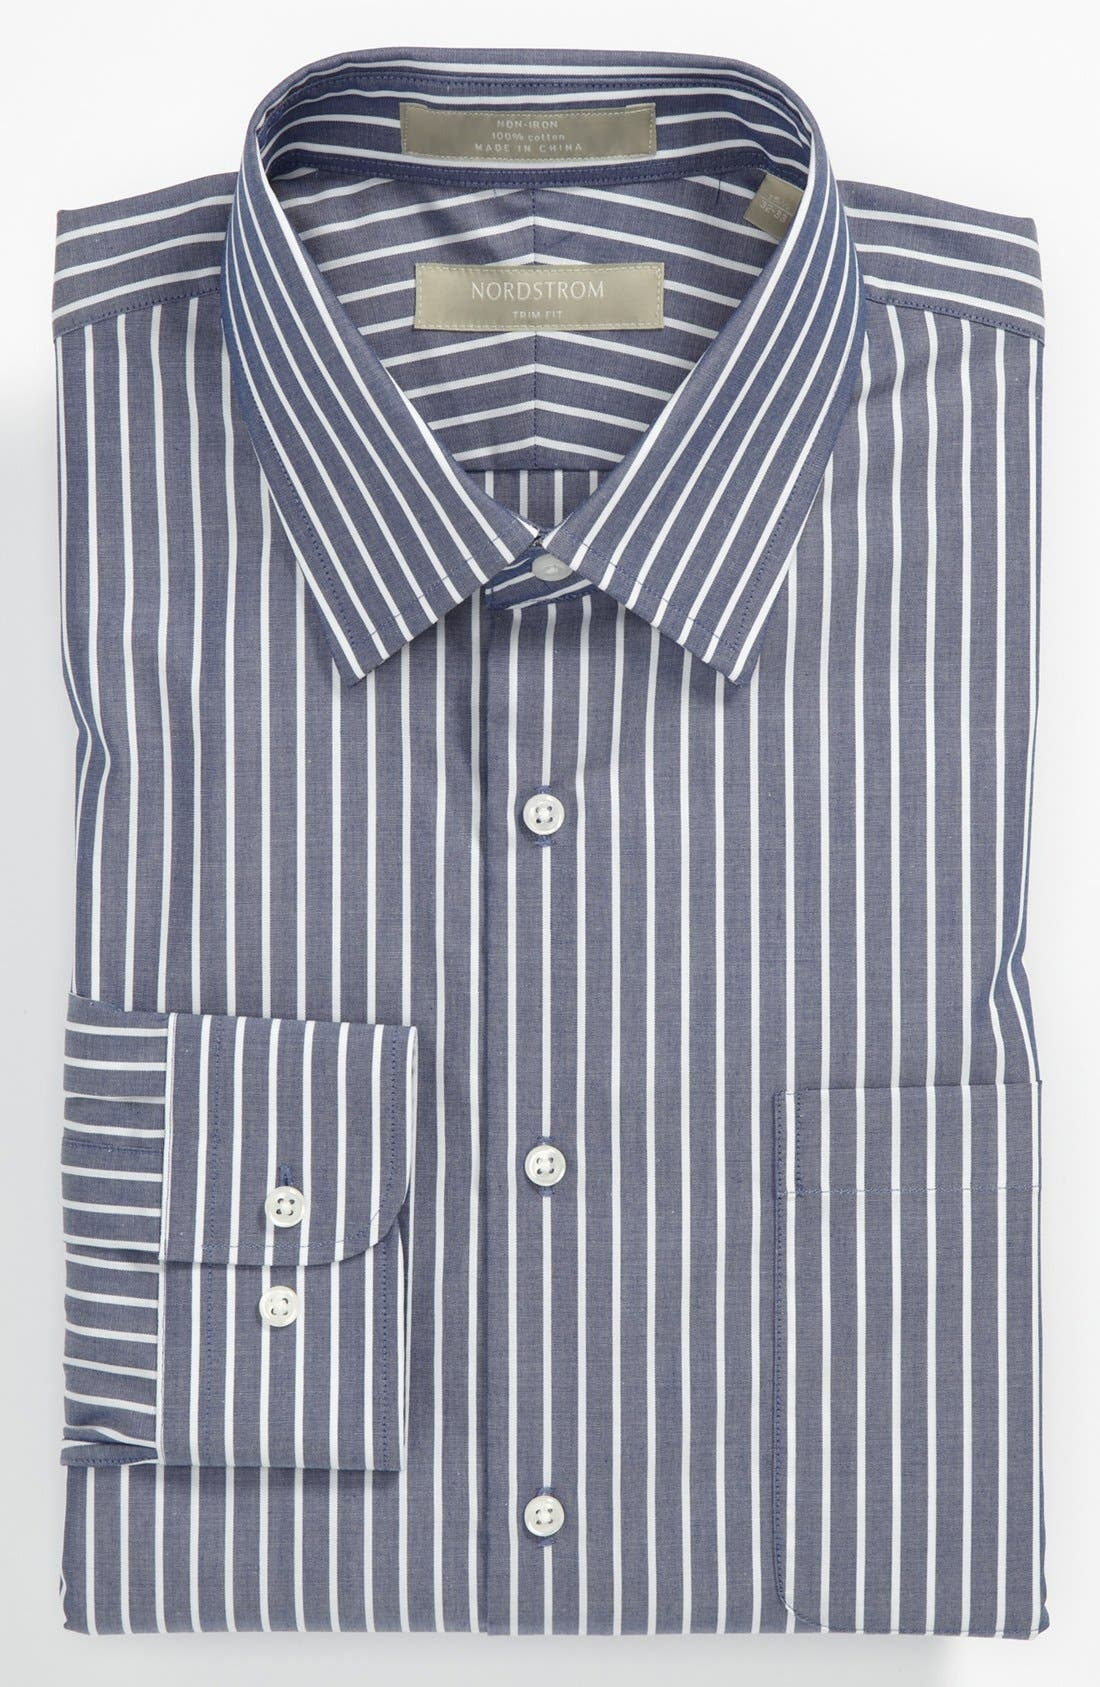 Main Image - Nordstrom Trim Fit Dress Shirt